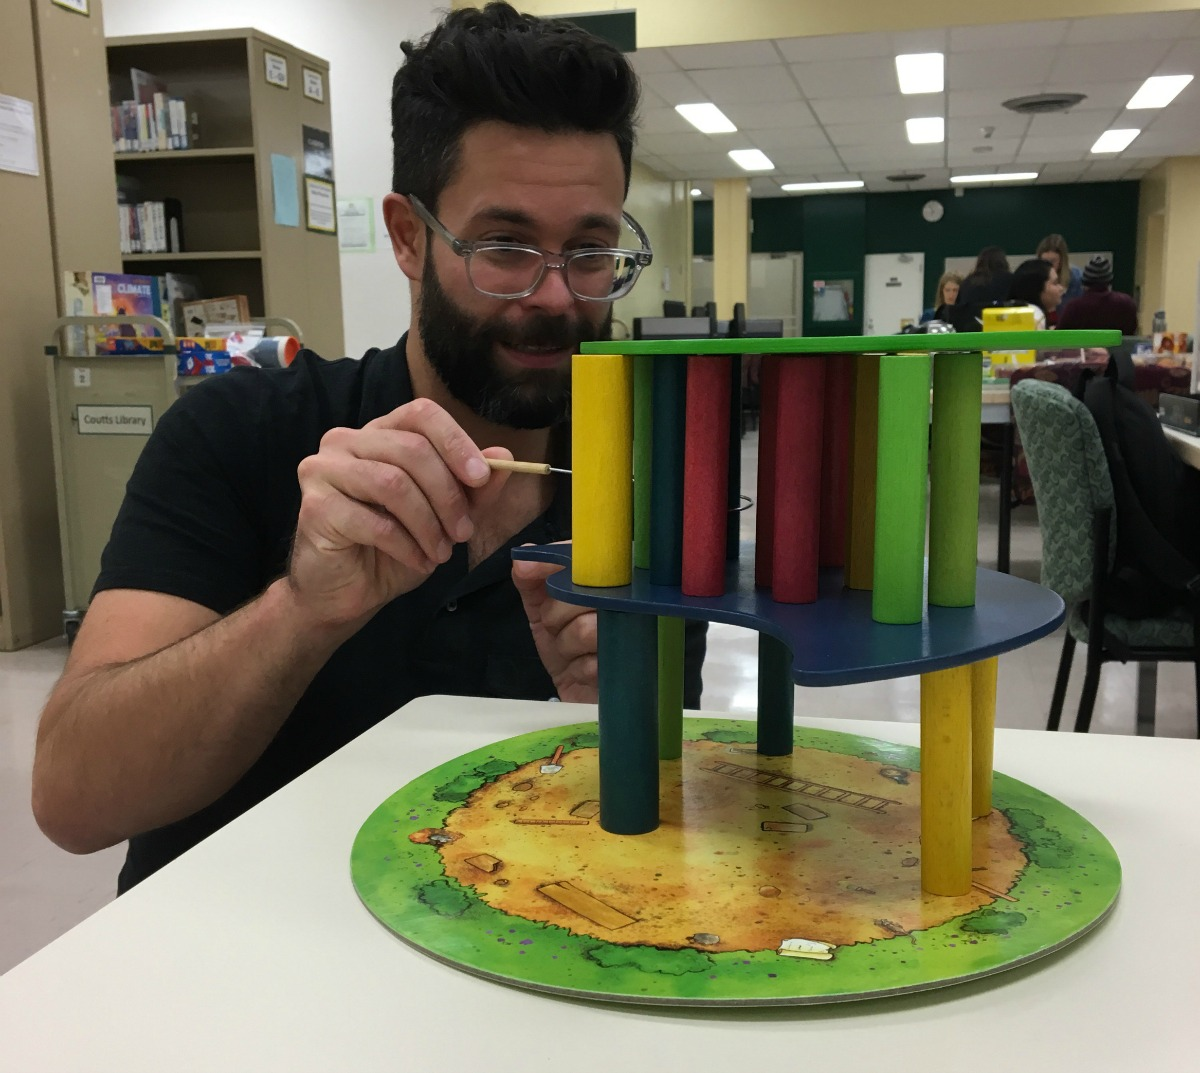 Games STEM teachers play